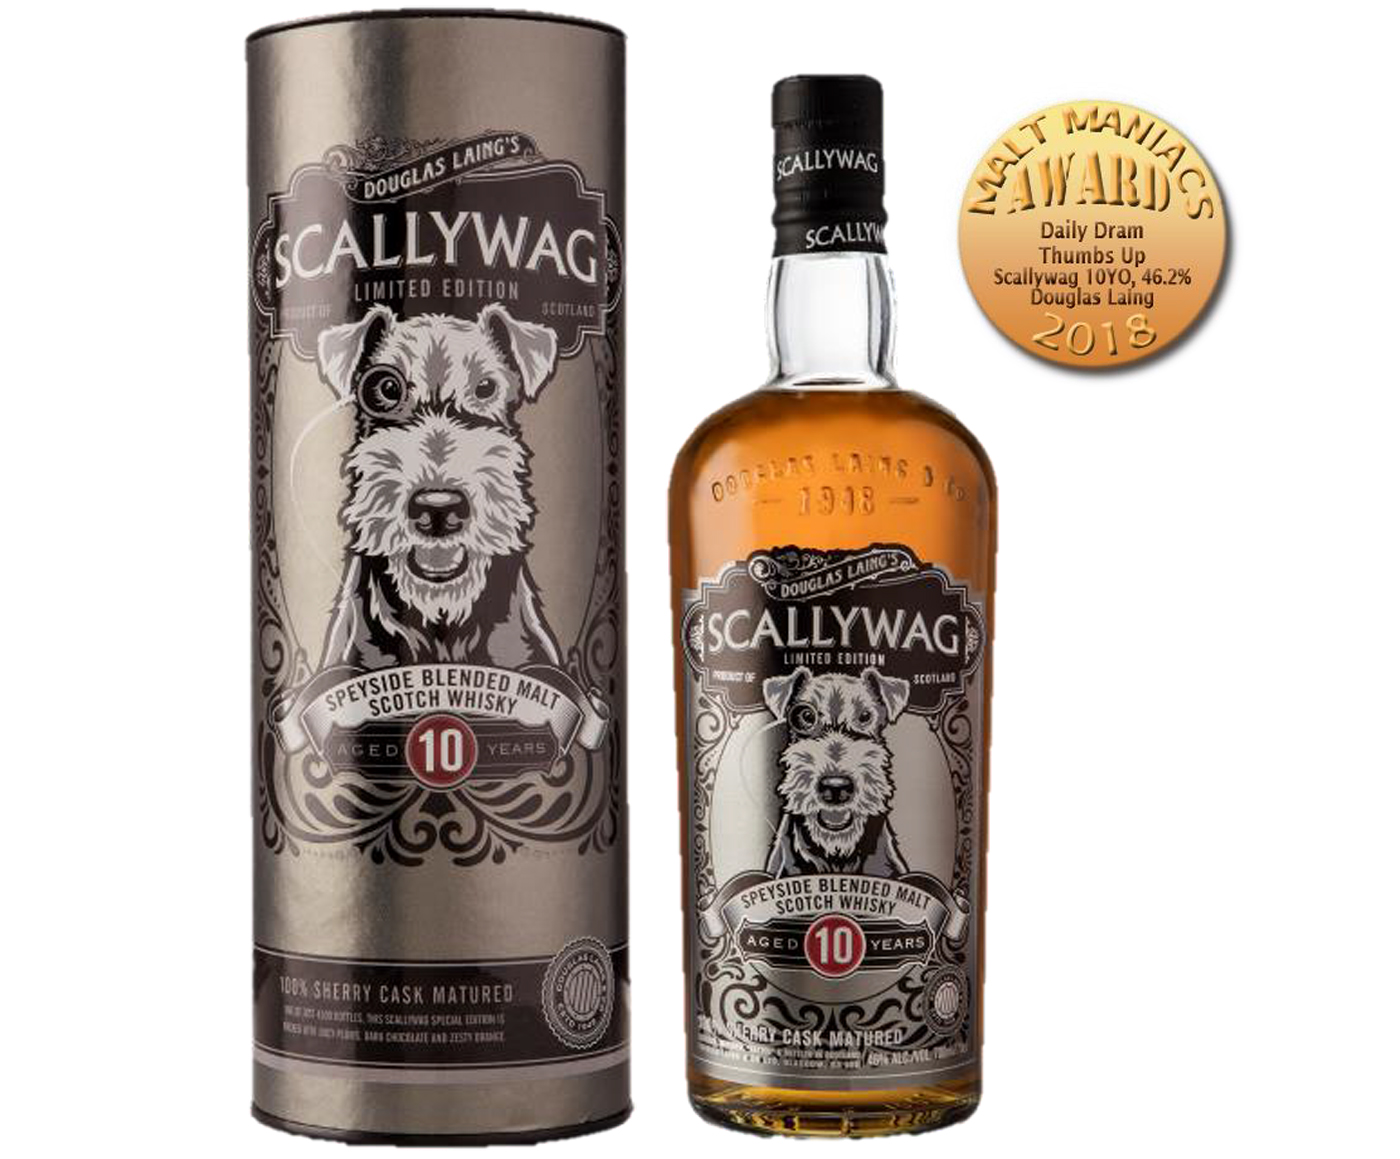 Scallywag 10 Years Old Limited Edition Speyside Malt Scotch Whisky